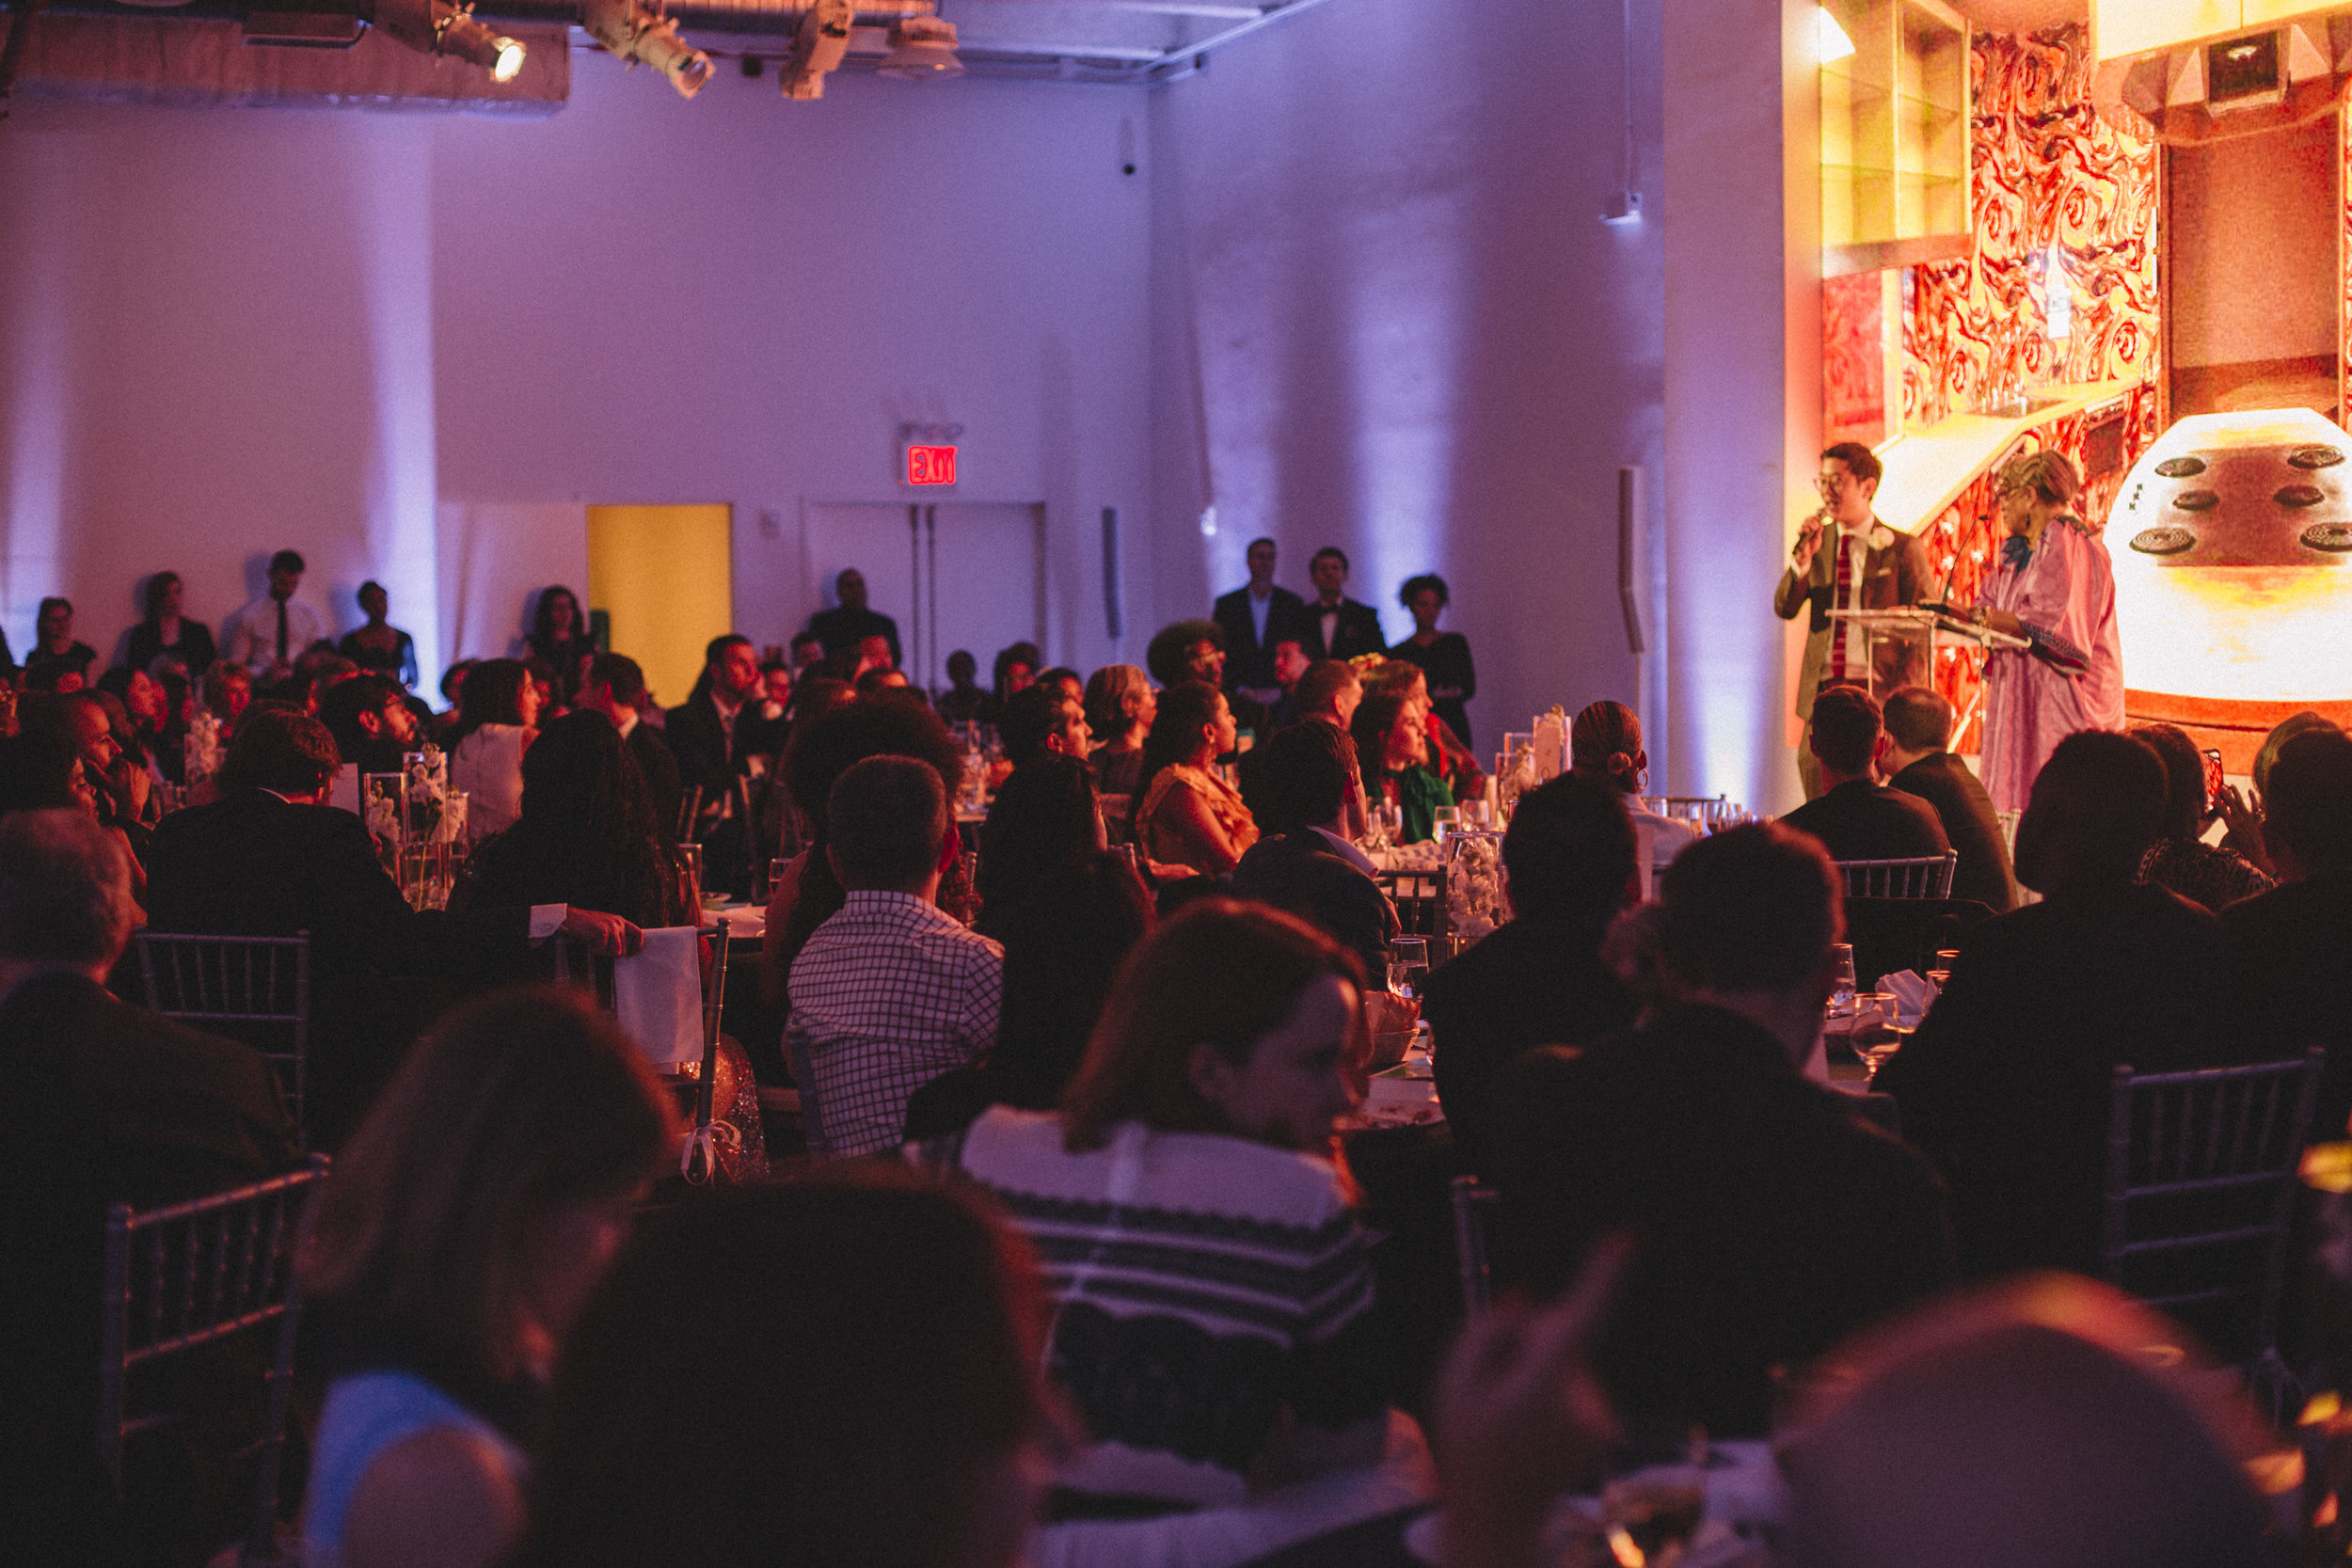 Executive Director Peter J. Kim and African/American Lead Curator Dr. Jessica B. Harris announce the news of MOFAD's possession of the  Ebony  Test Kitchen at the MOFAD Spring Gala Honoring Questlove on May 15, 2019. Photo credit: Noemie Marguerite.